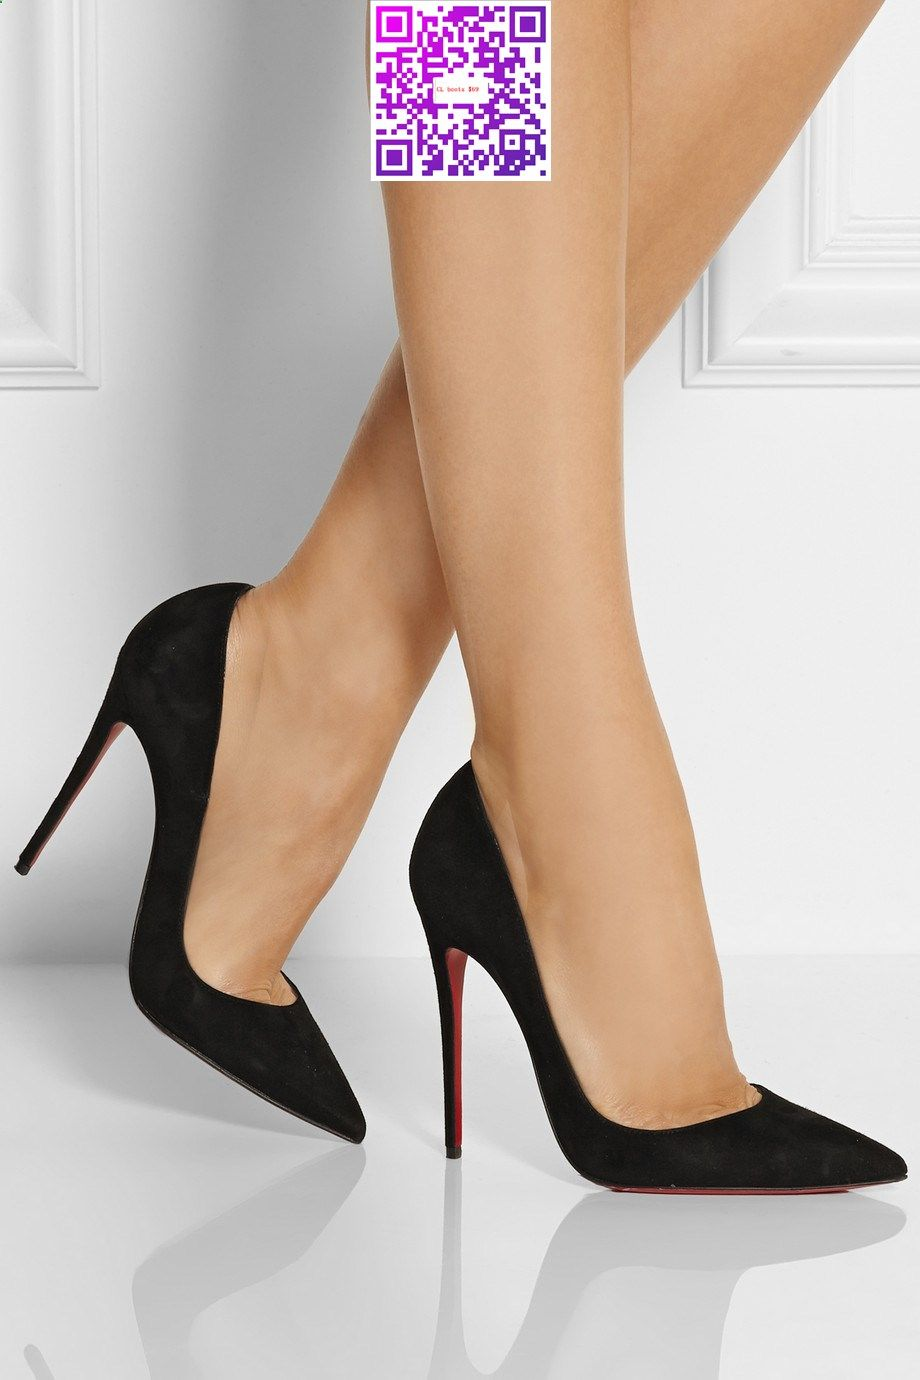 christian louboutin sale new york louboutin sandals open toes heels spikes upper